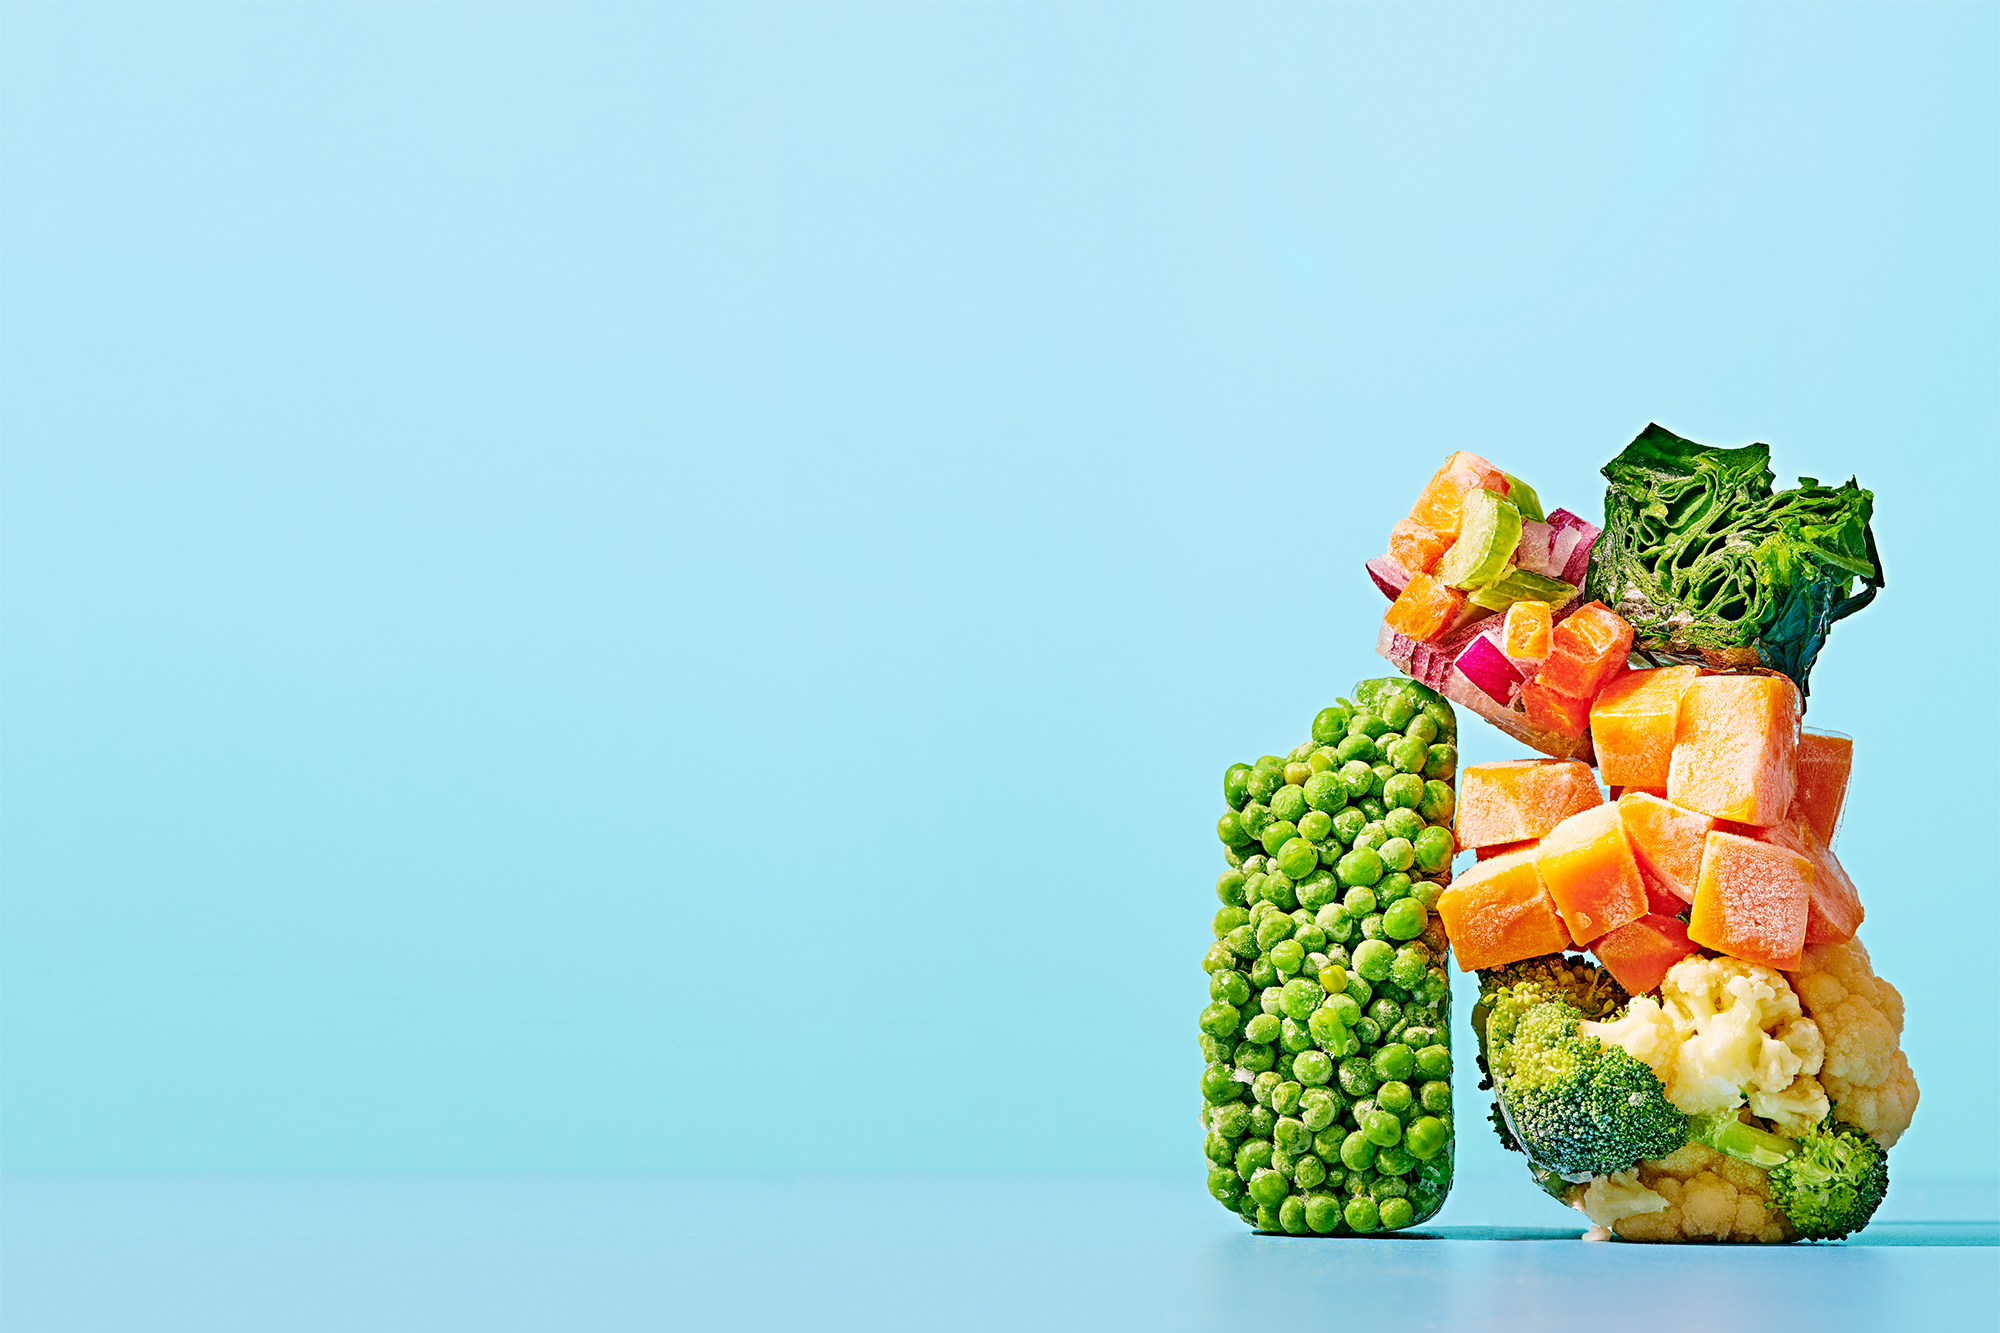 A stack of frozen vegetables on a blue background